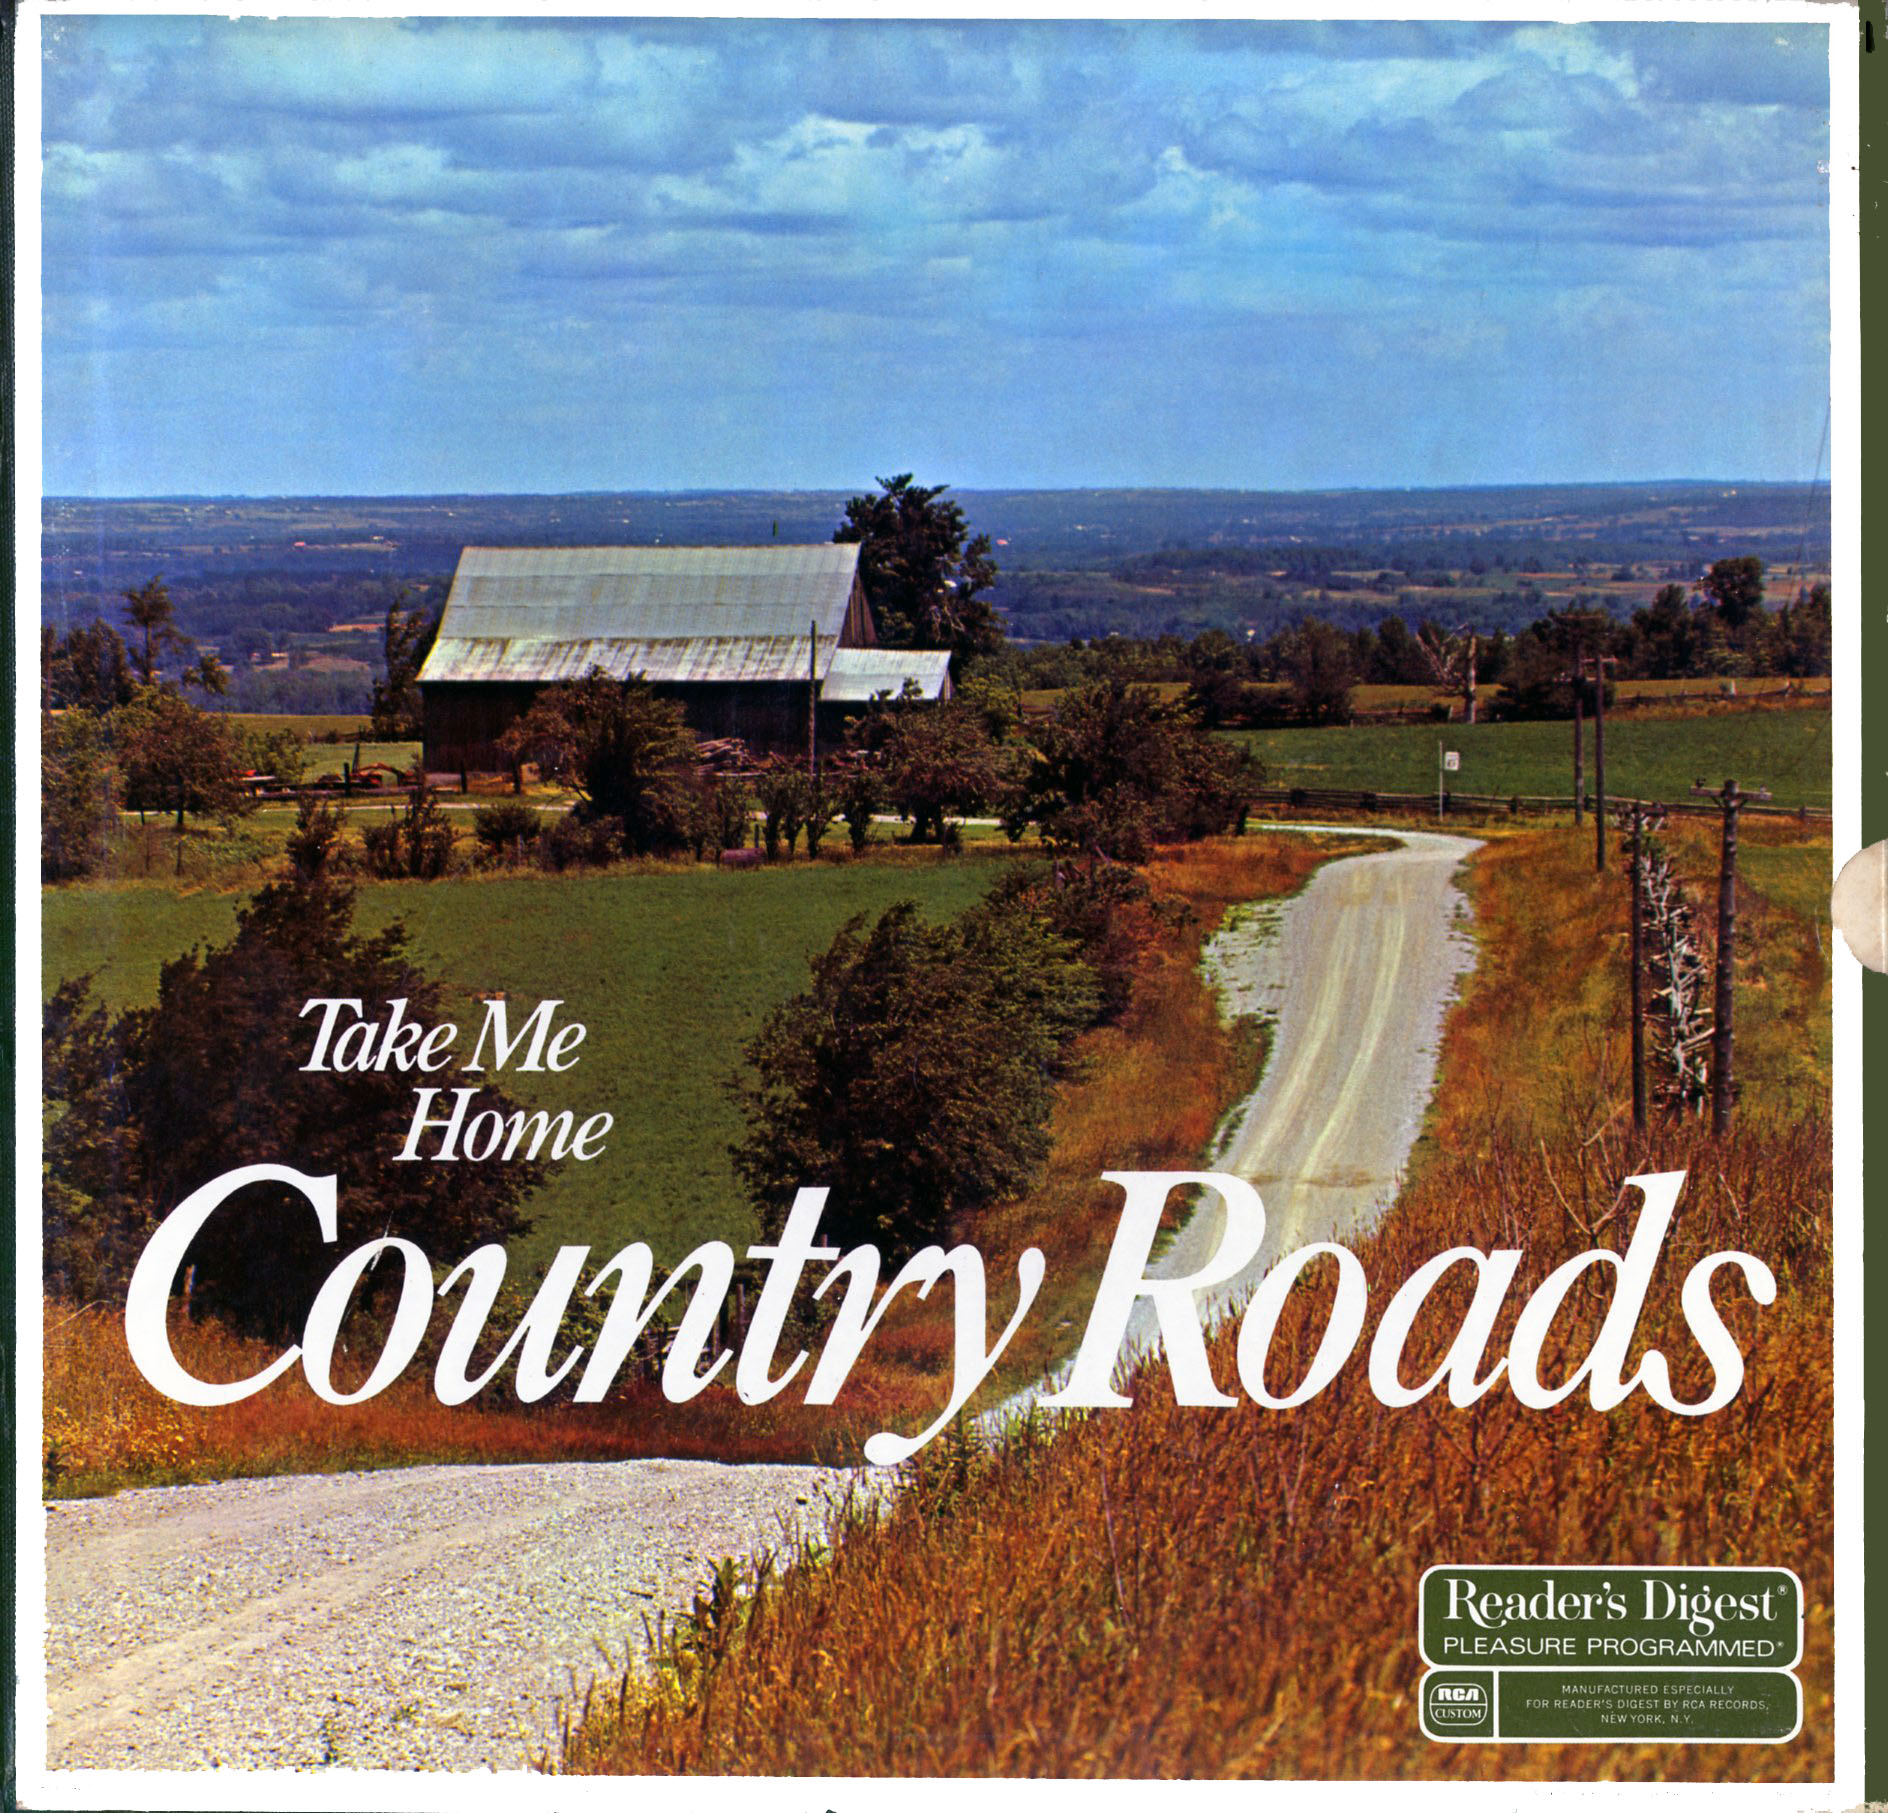 RDA142 - Readers Digest Take Me Home Country Roads on CD